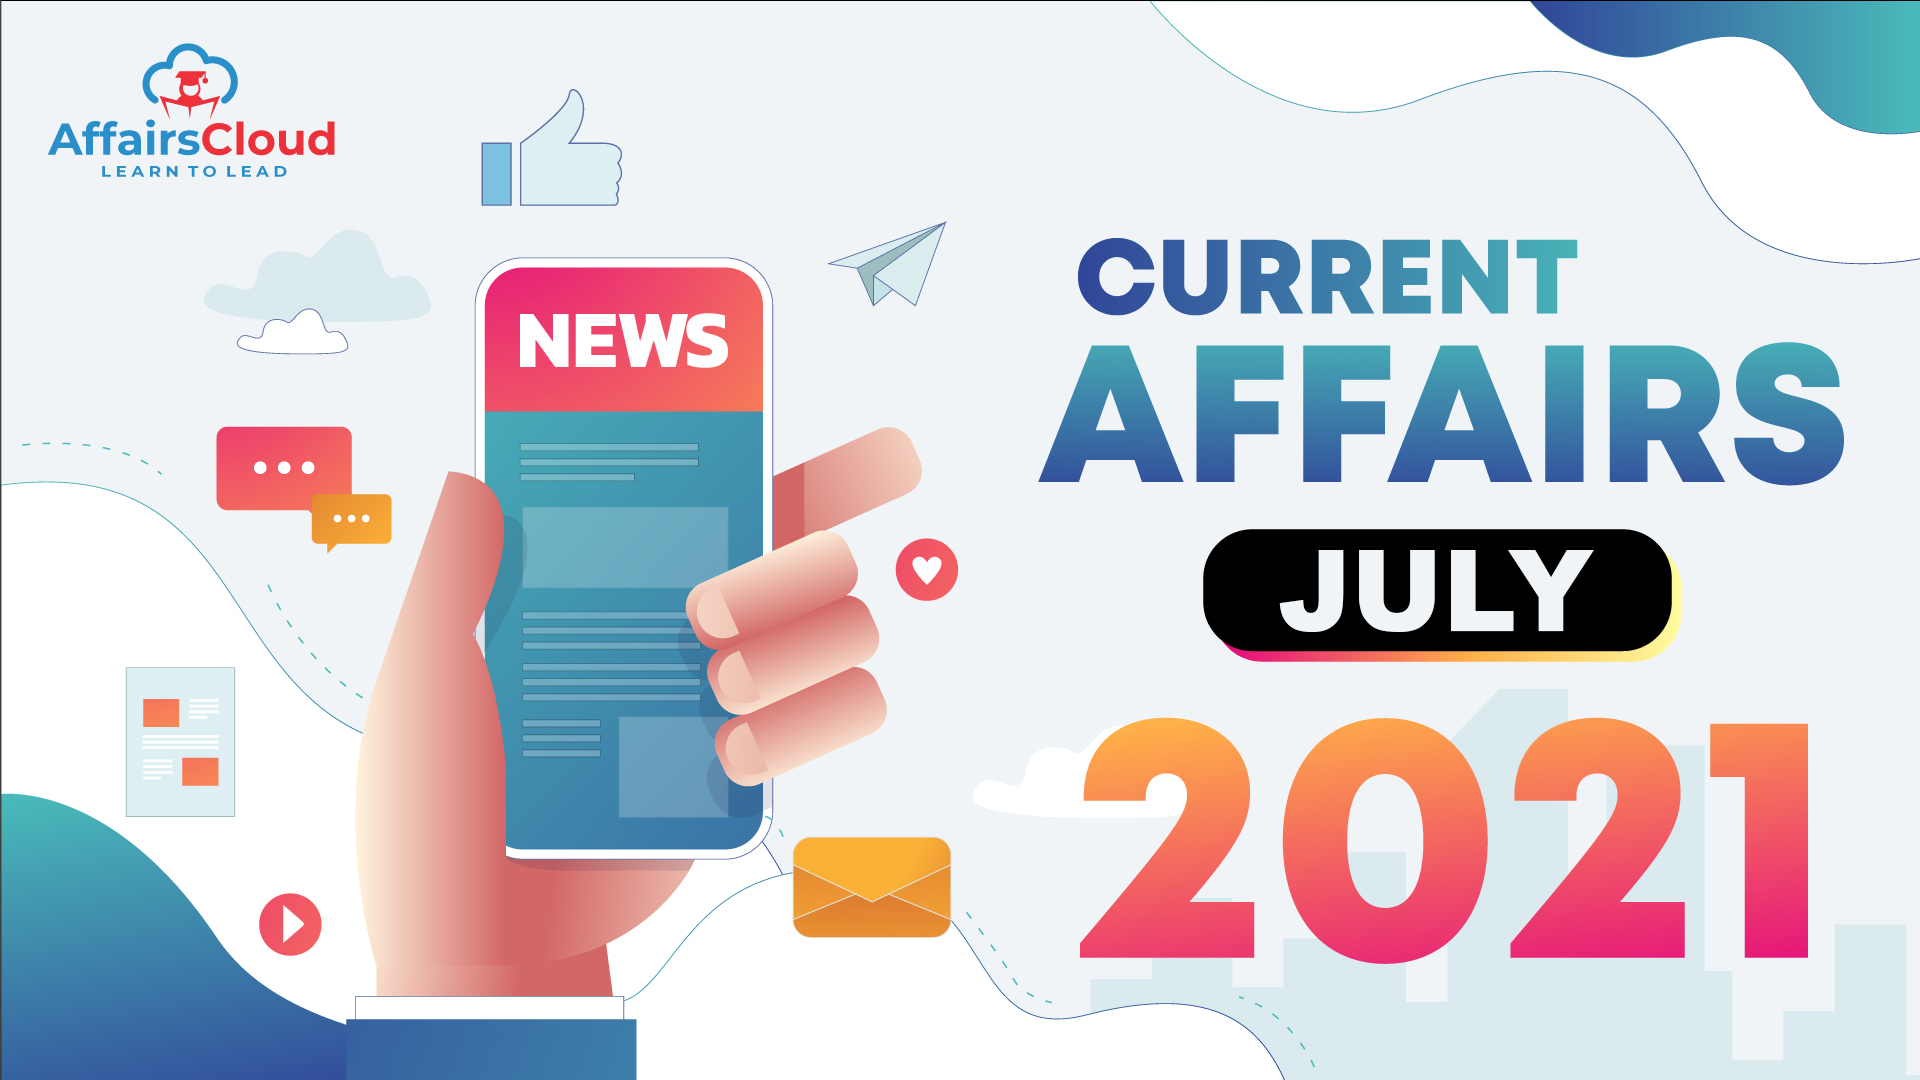 CURRENT-AFFAIRS-MONTHY July-2021